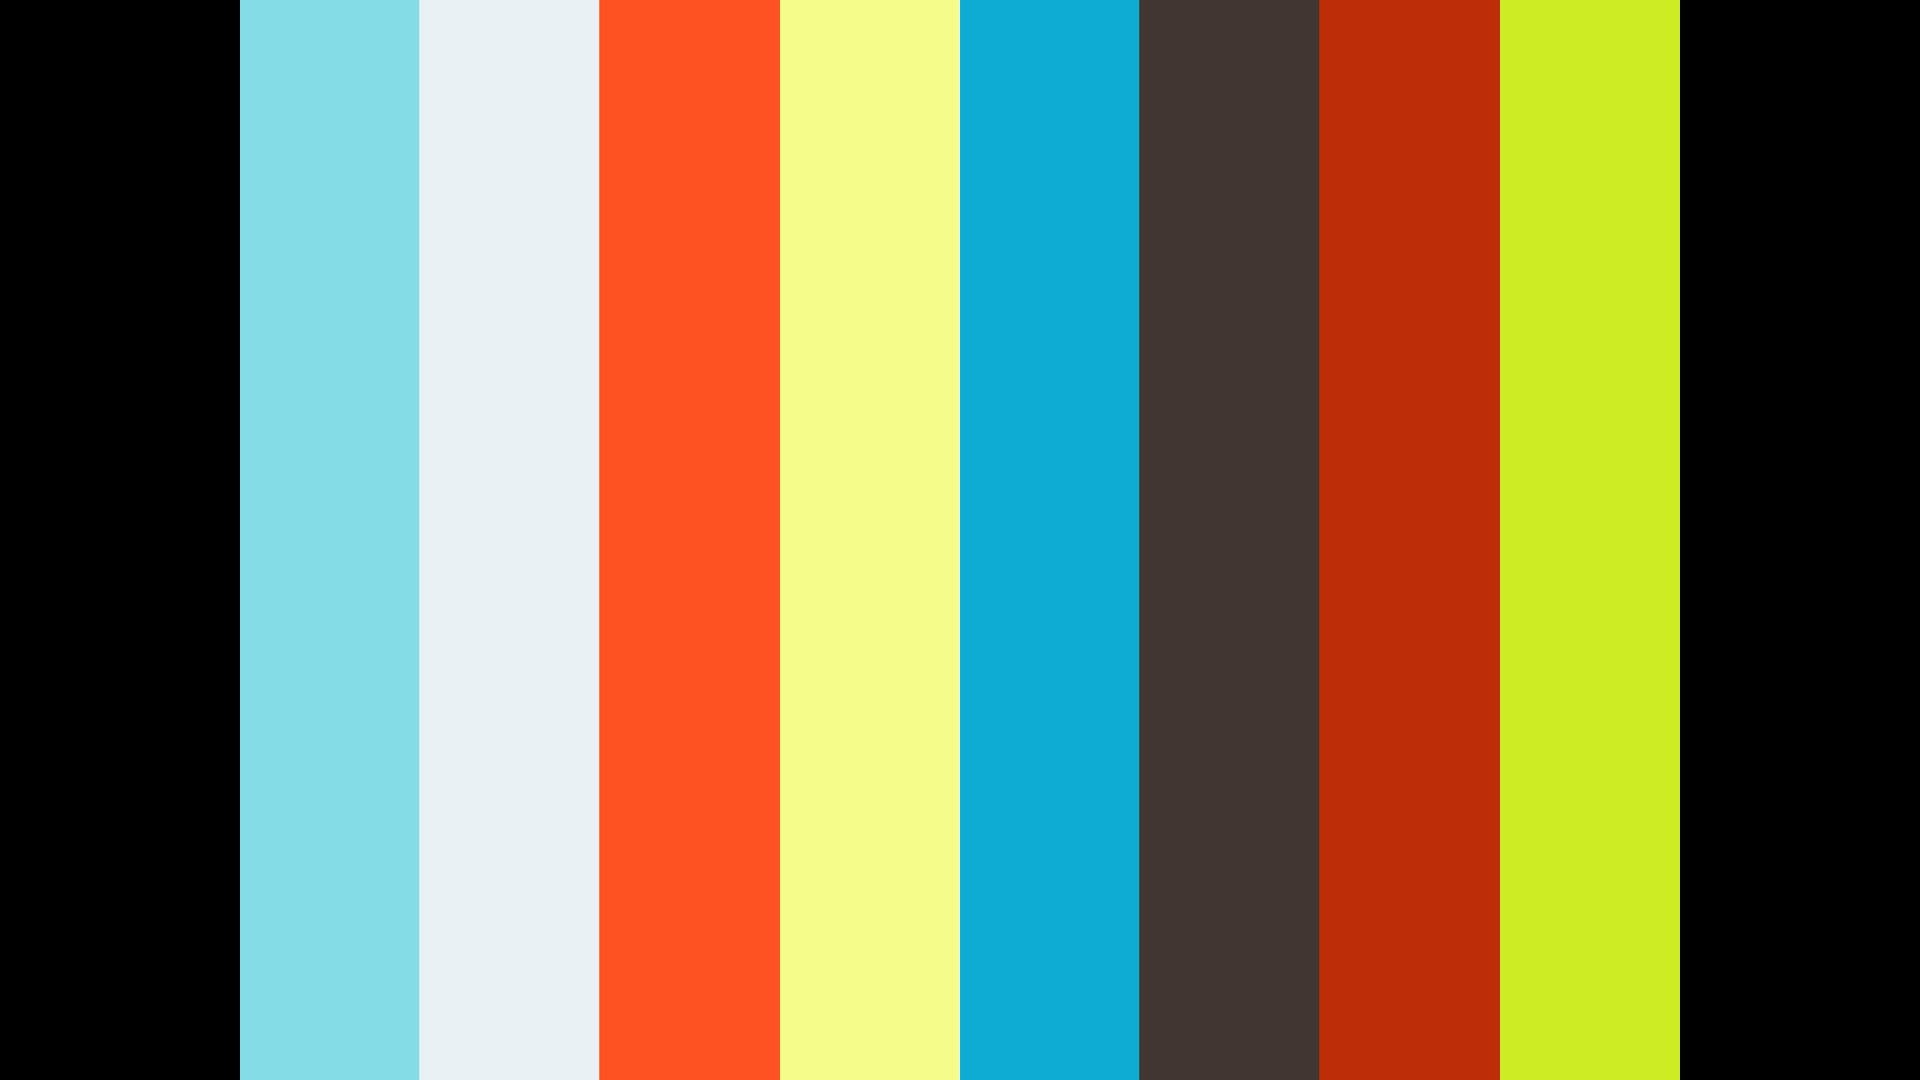 Do I have to list all my creditors when I file for bankruptcy?